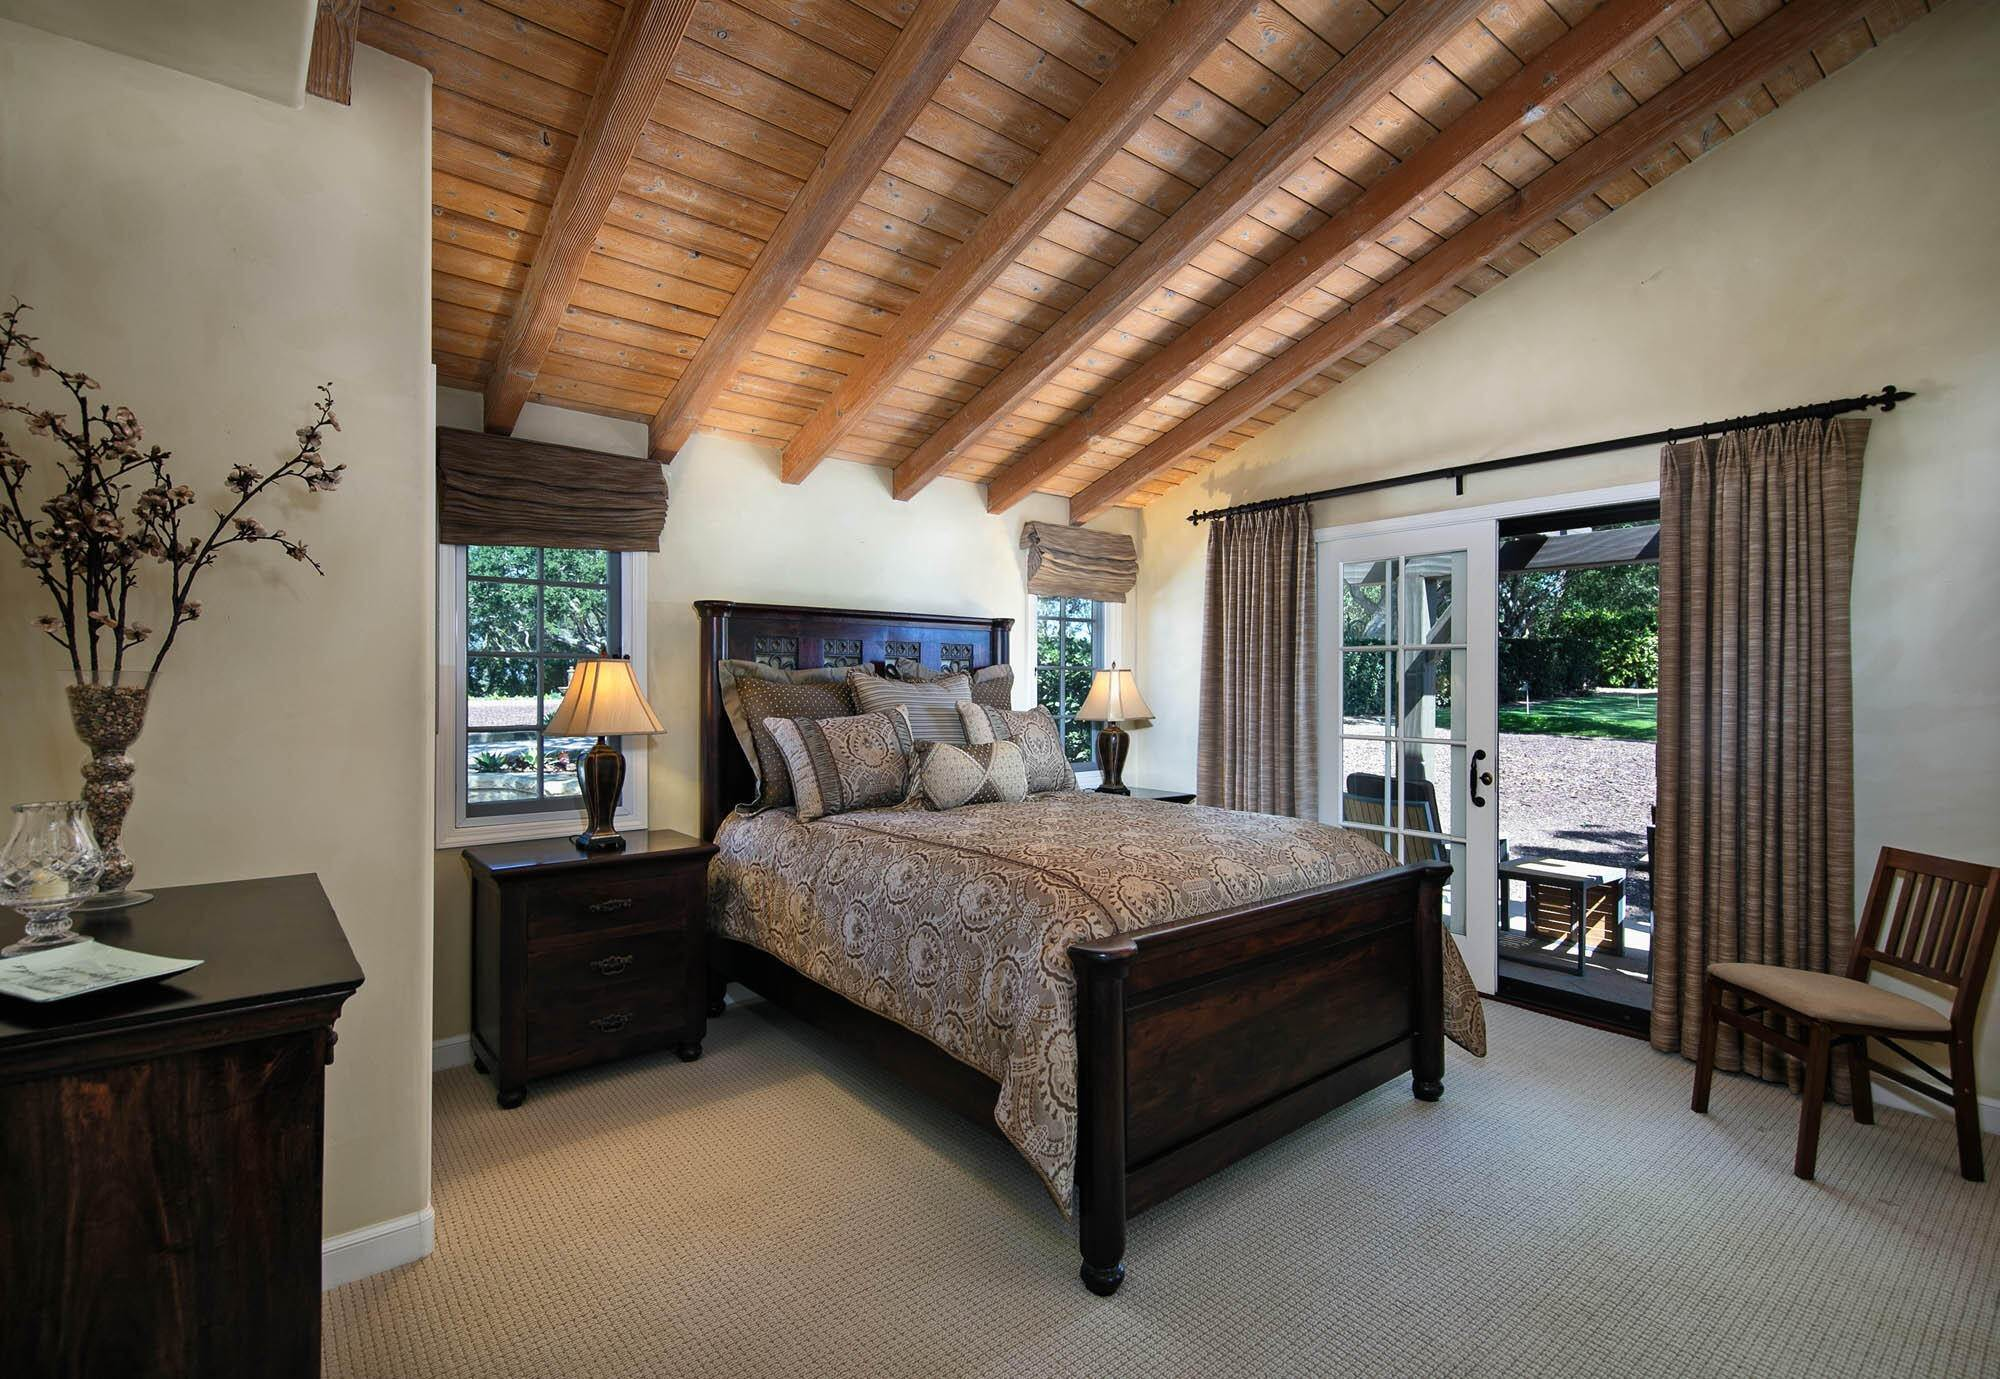 22. Estate for Sale at 4180 Cresta Avenue Santa Barbara, California 93110 United States